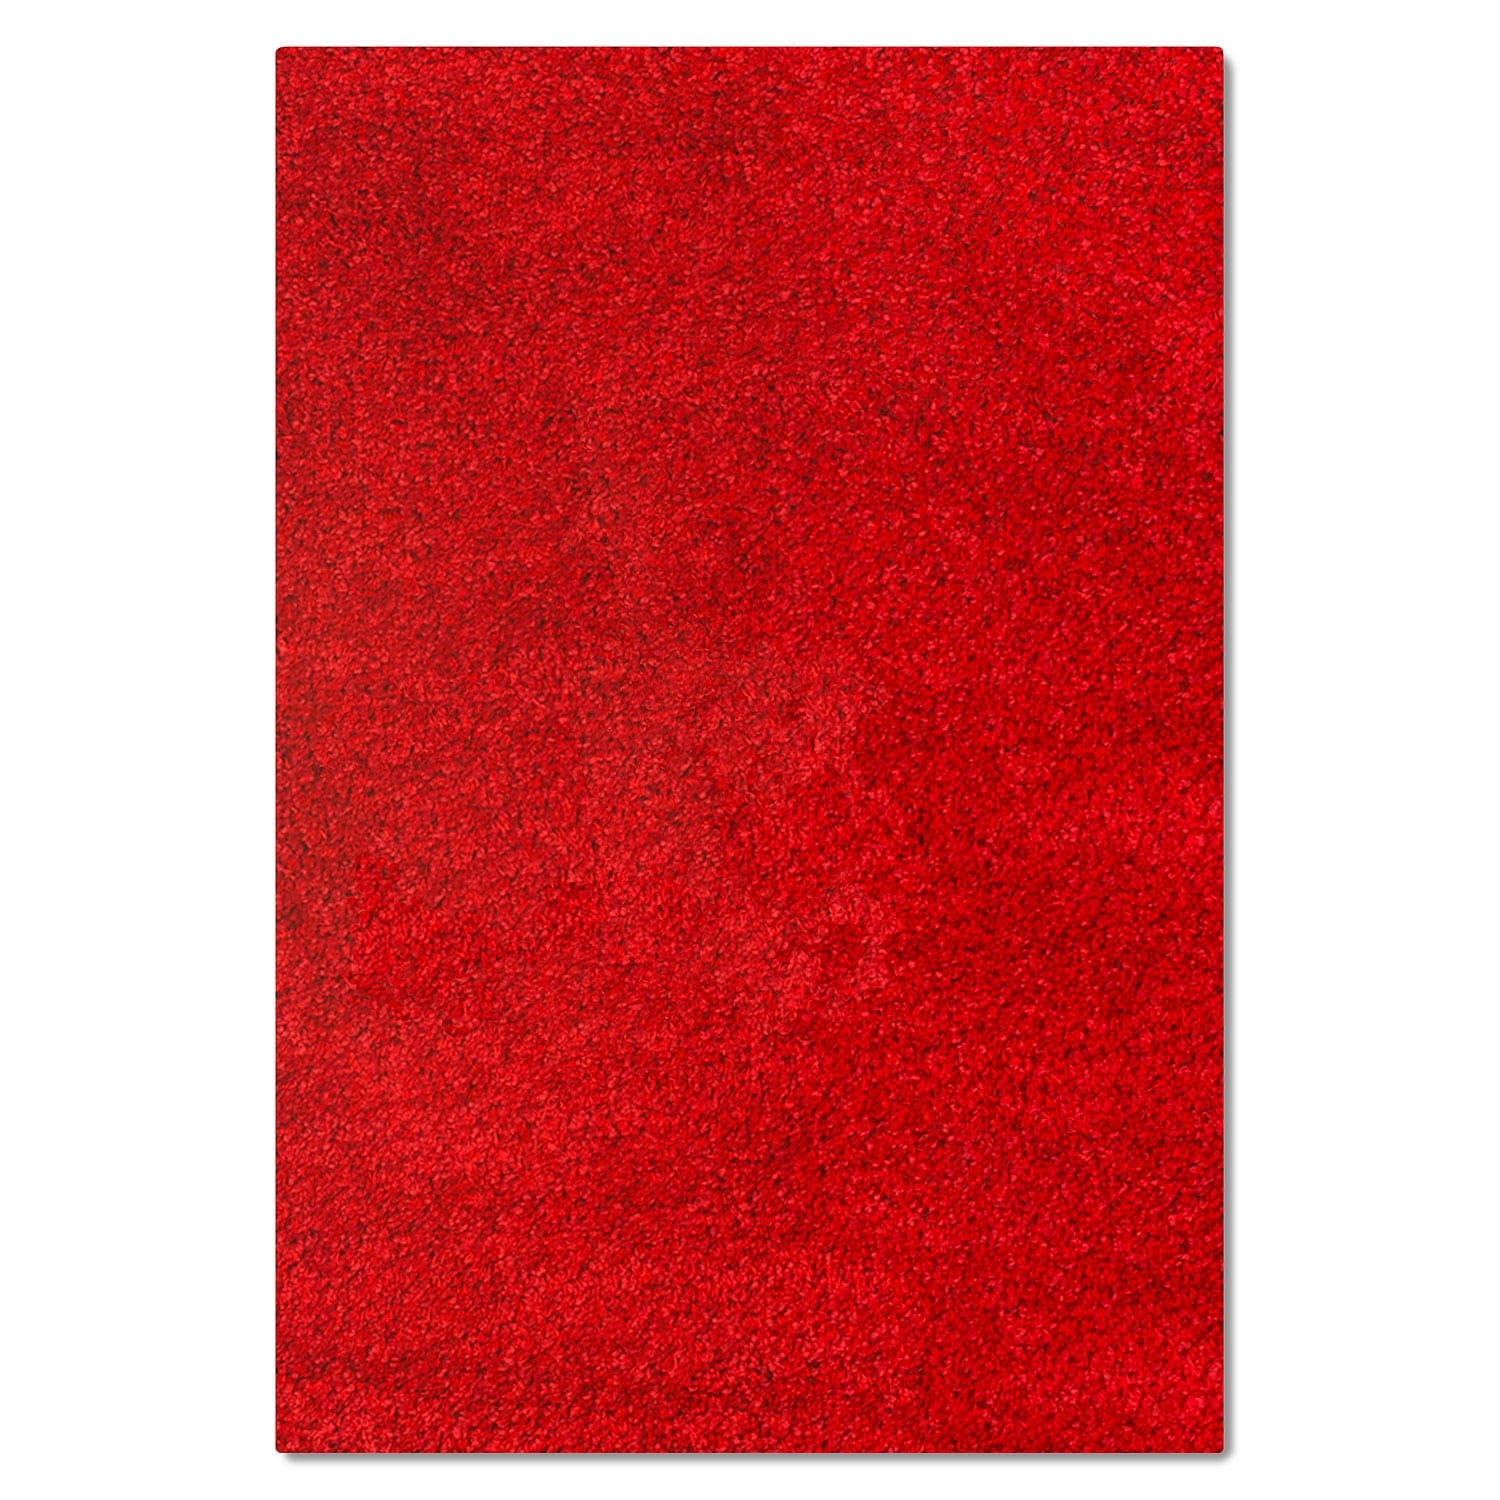 Rugs - Comfort Shag Area Rug - Red